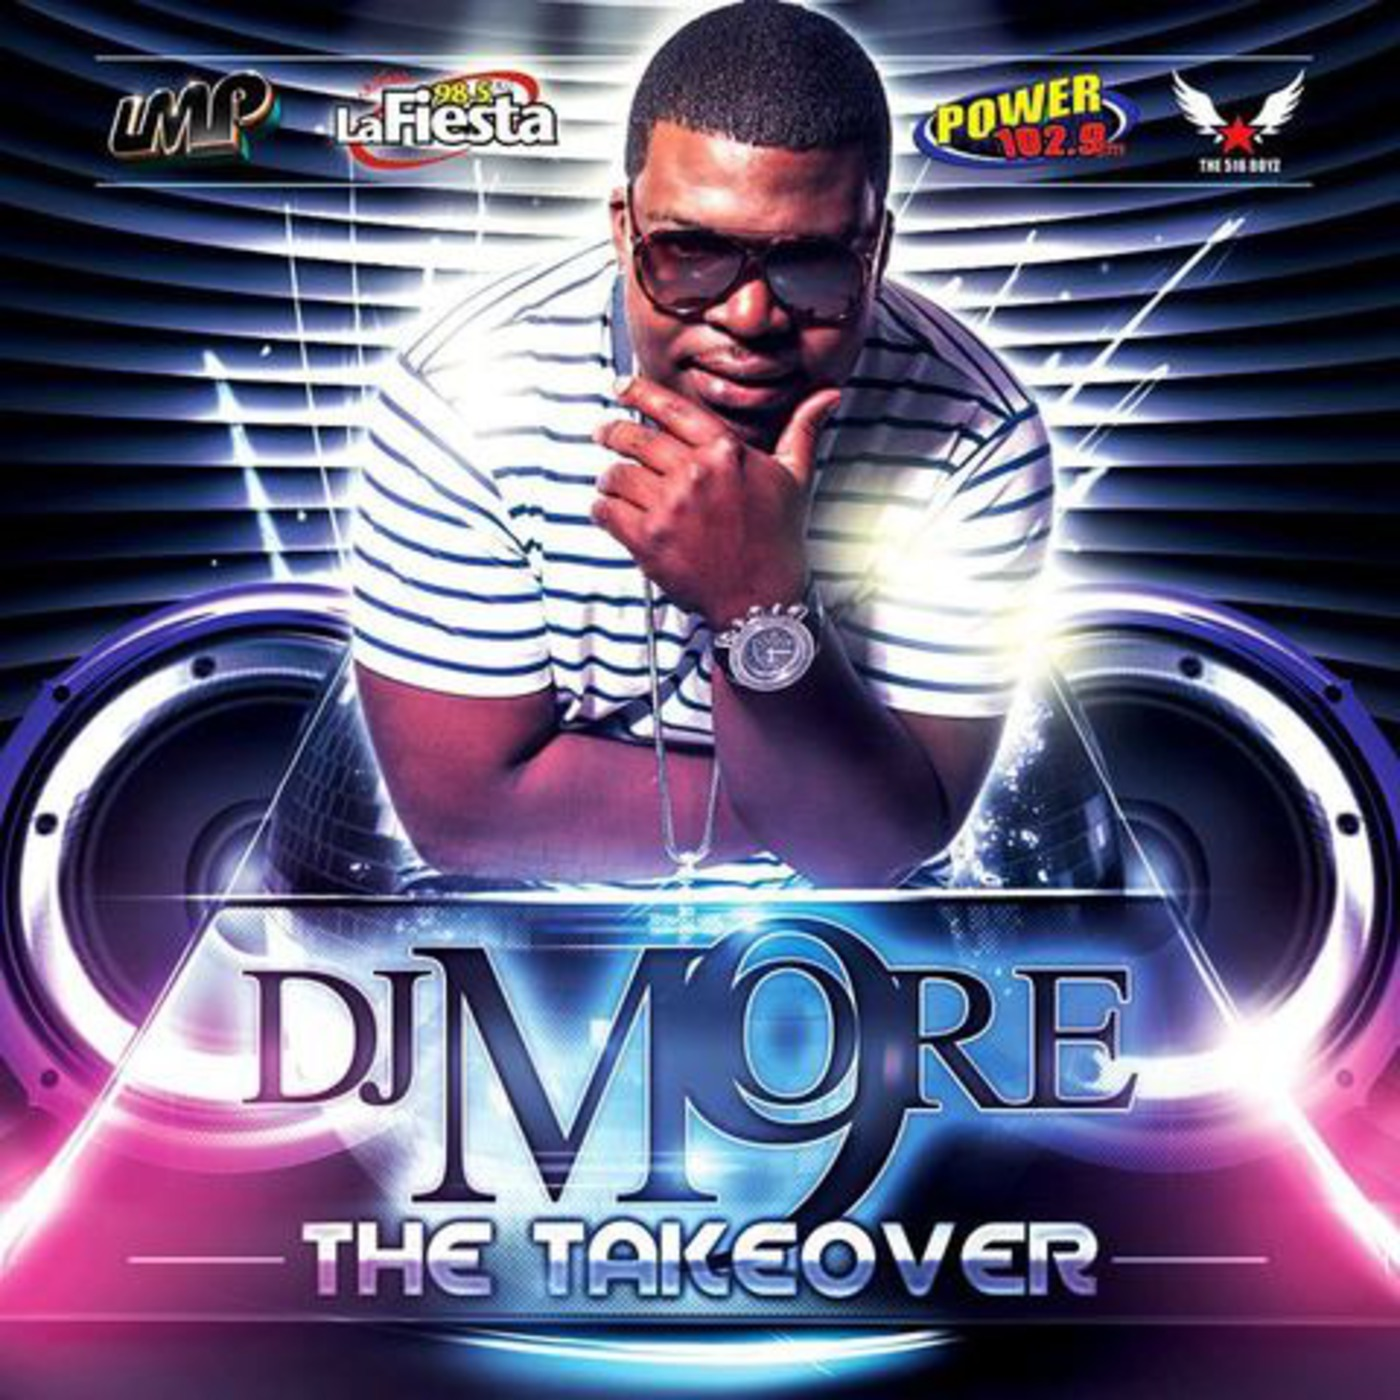 dj More9 the take over